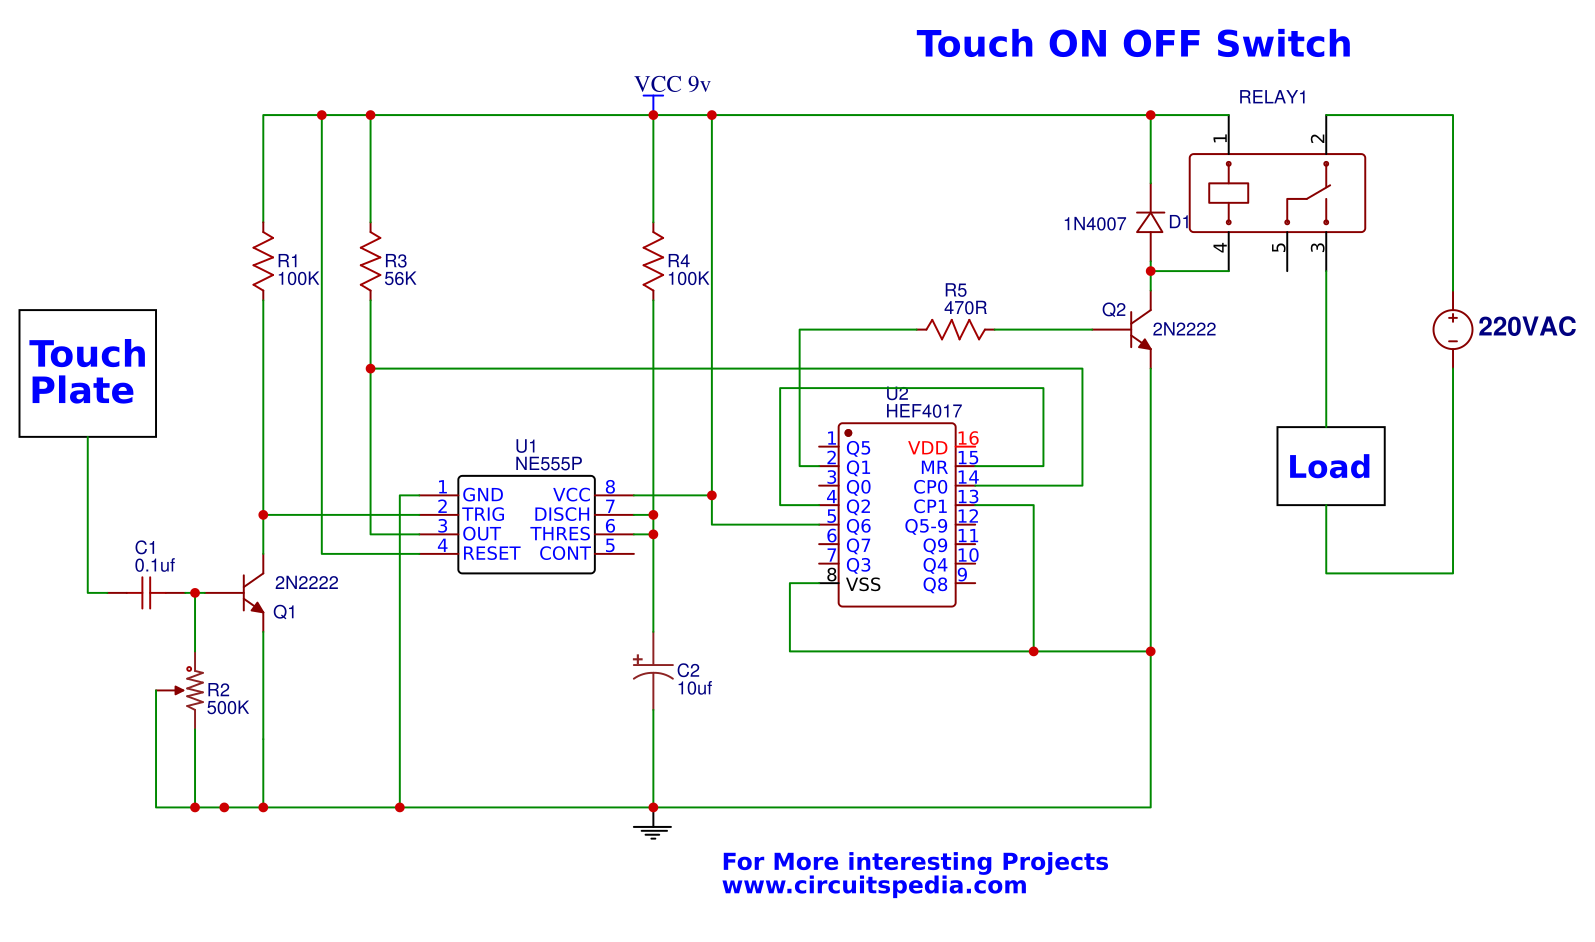 Schematic_TouchONOFFswitch_Sheet1_20180328170130.png